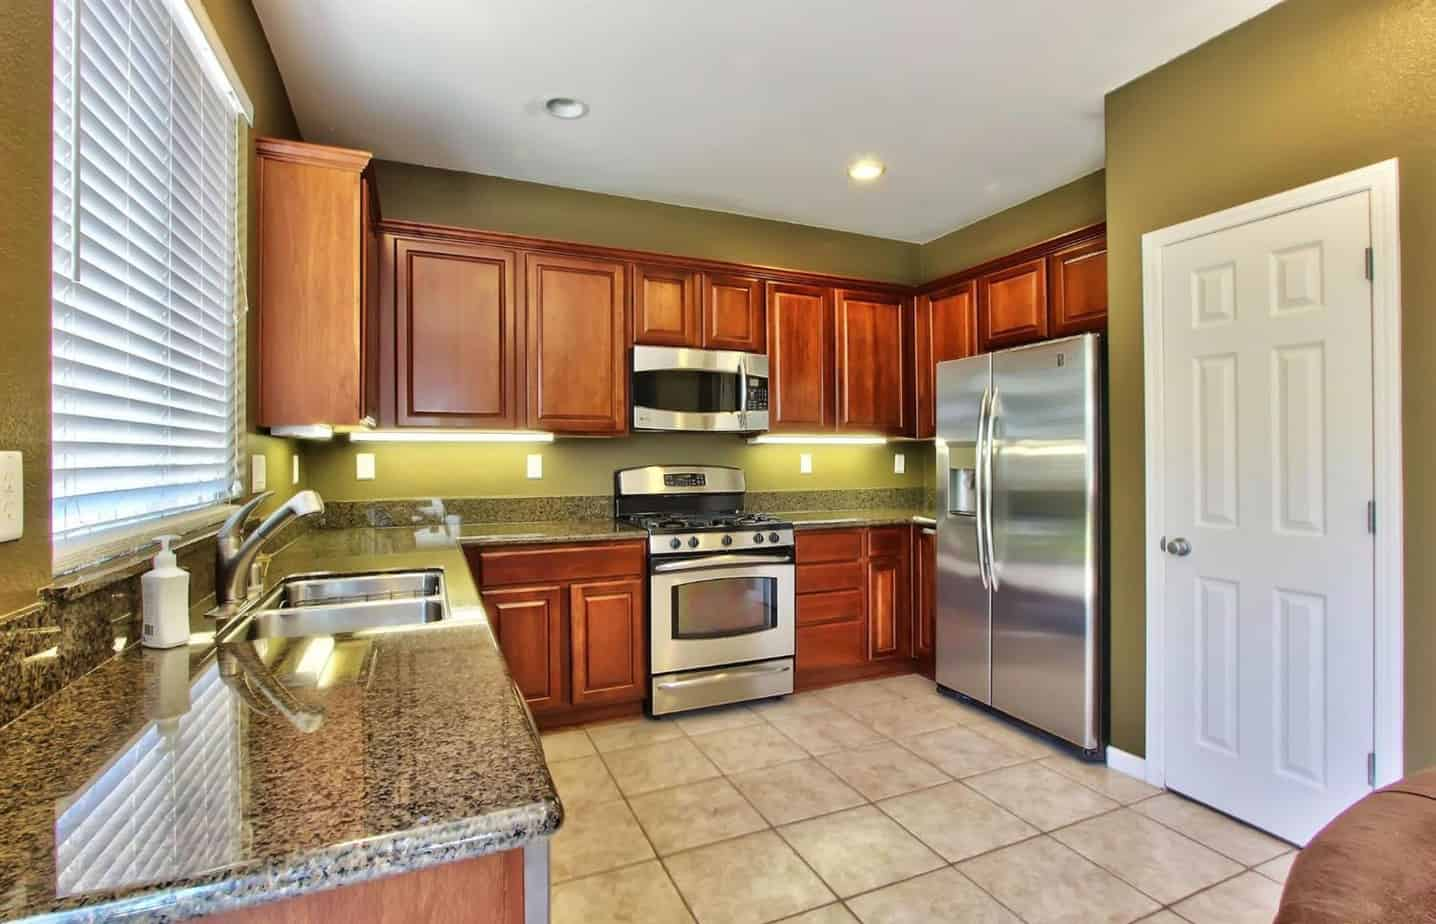 r Roseville Real Estate Agent Kaye Swain shares MLS 16034679 house for sale in Lincoln California kitchen